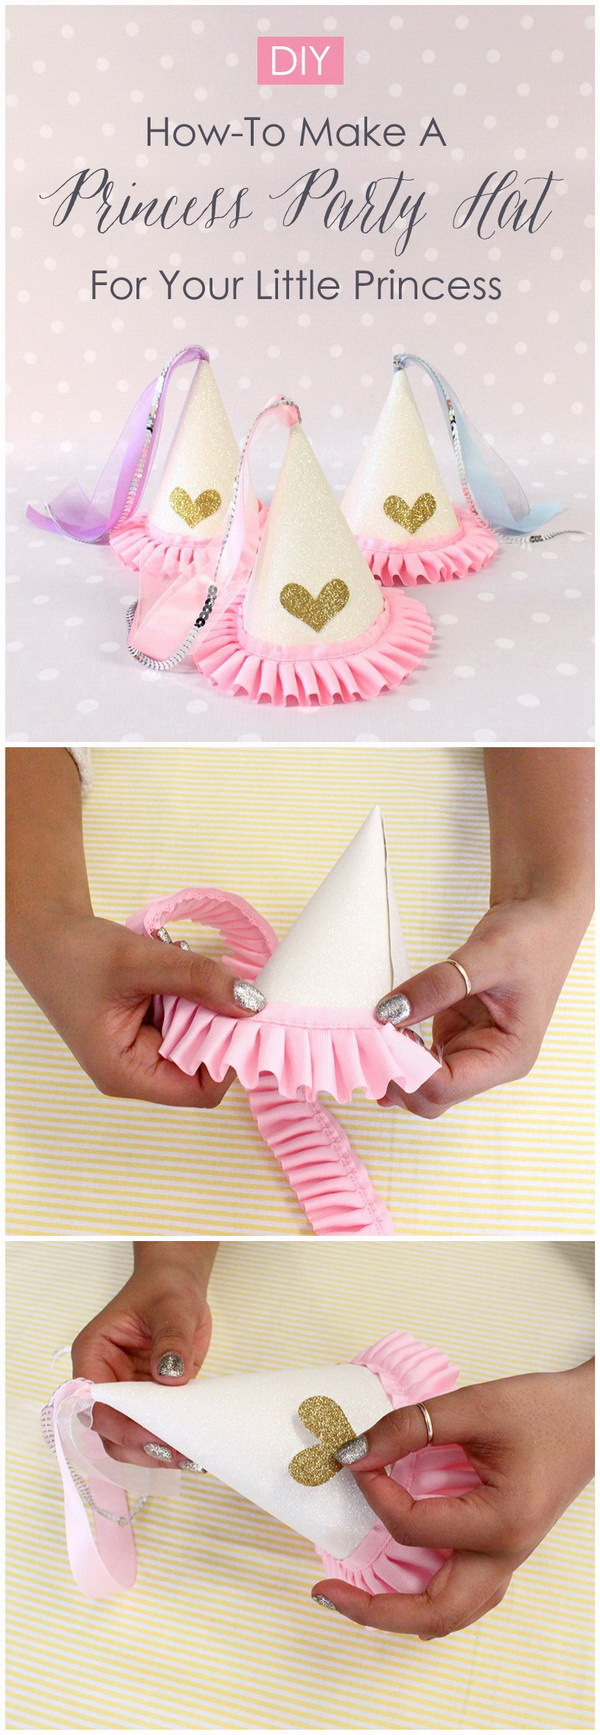 DIY Princess Party Hat.